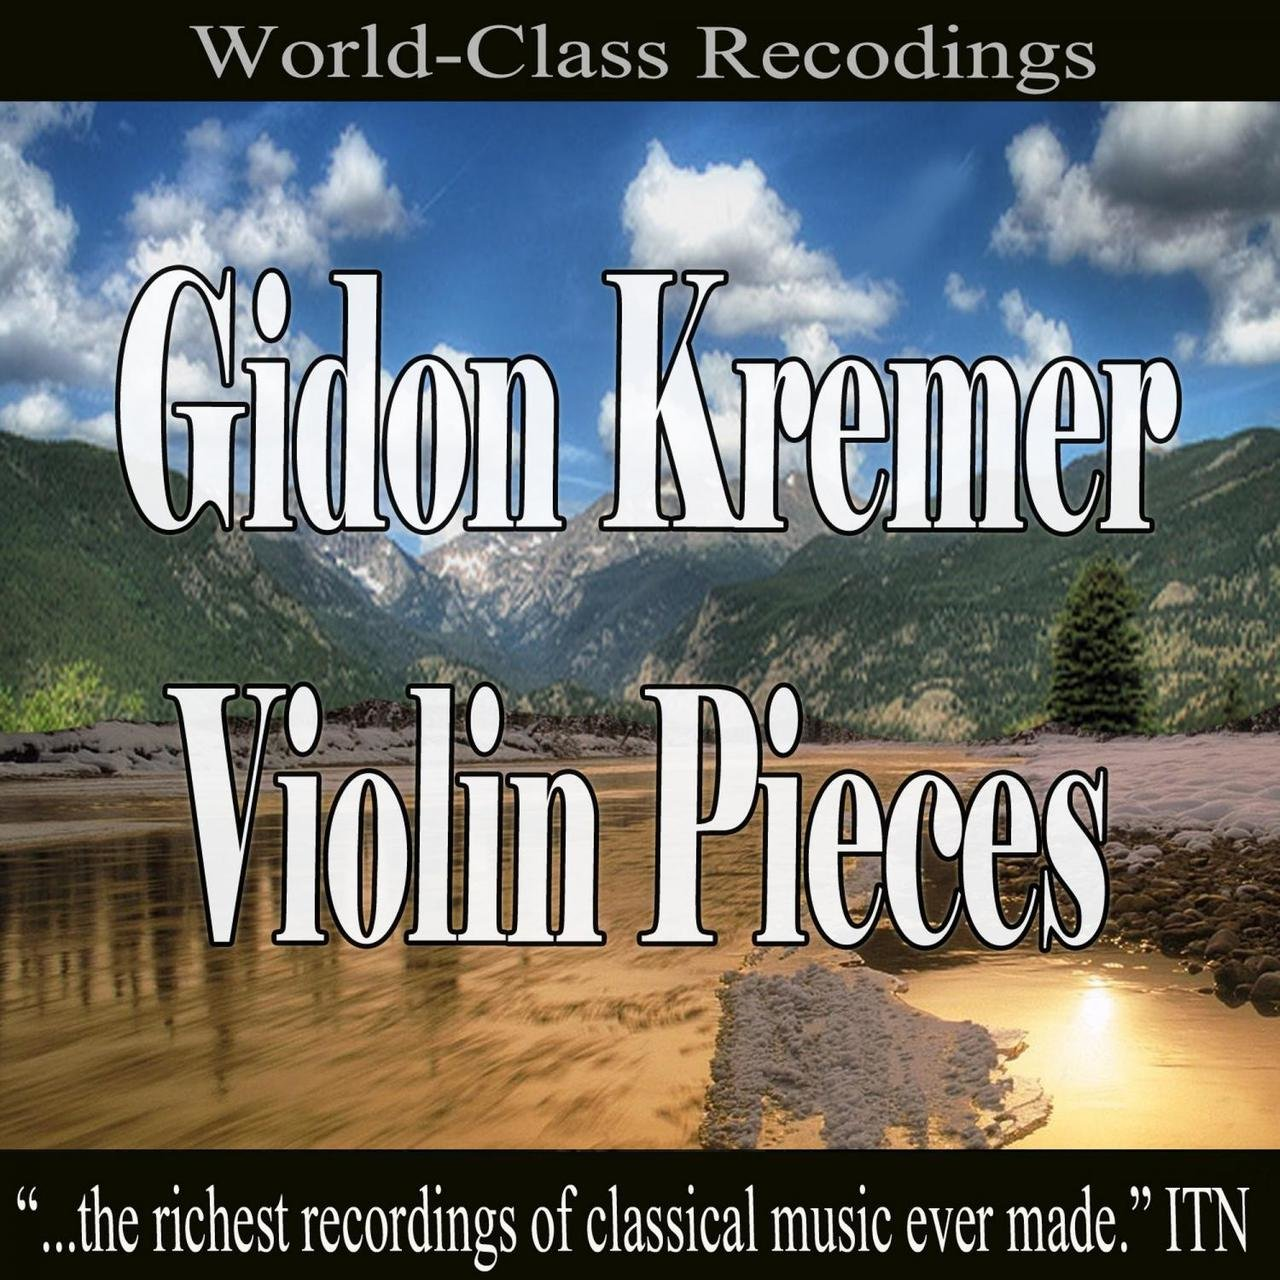 Gidon Kremer Violin Pieces